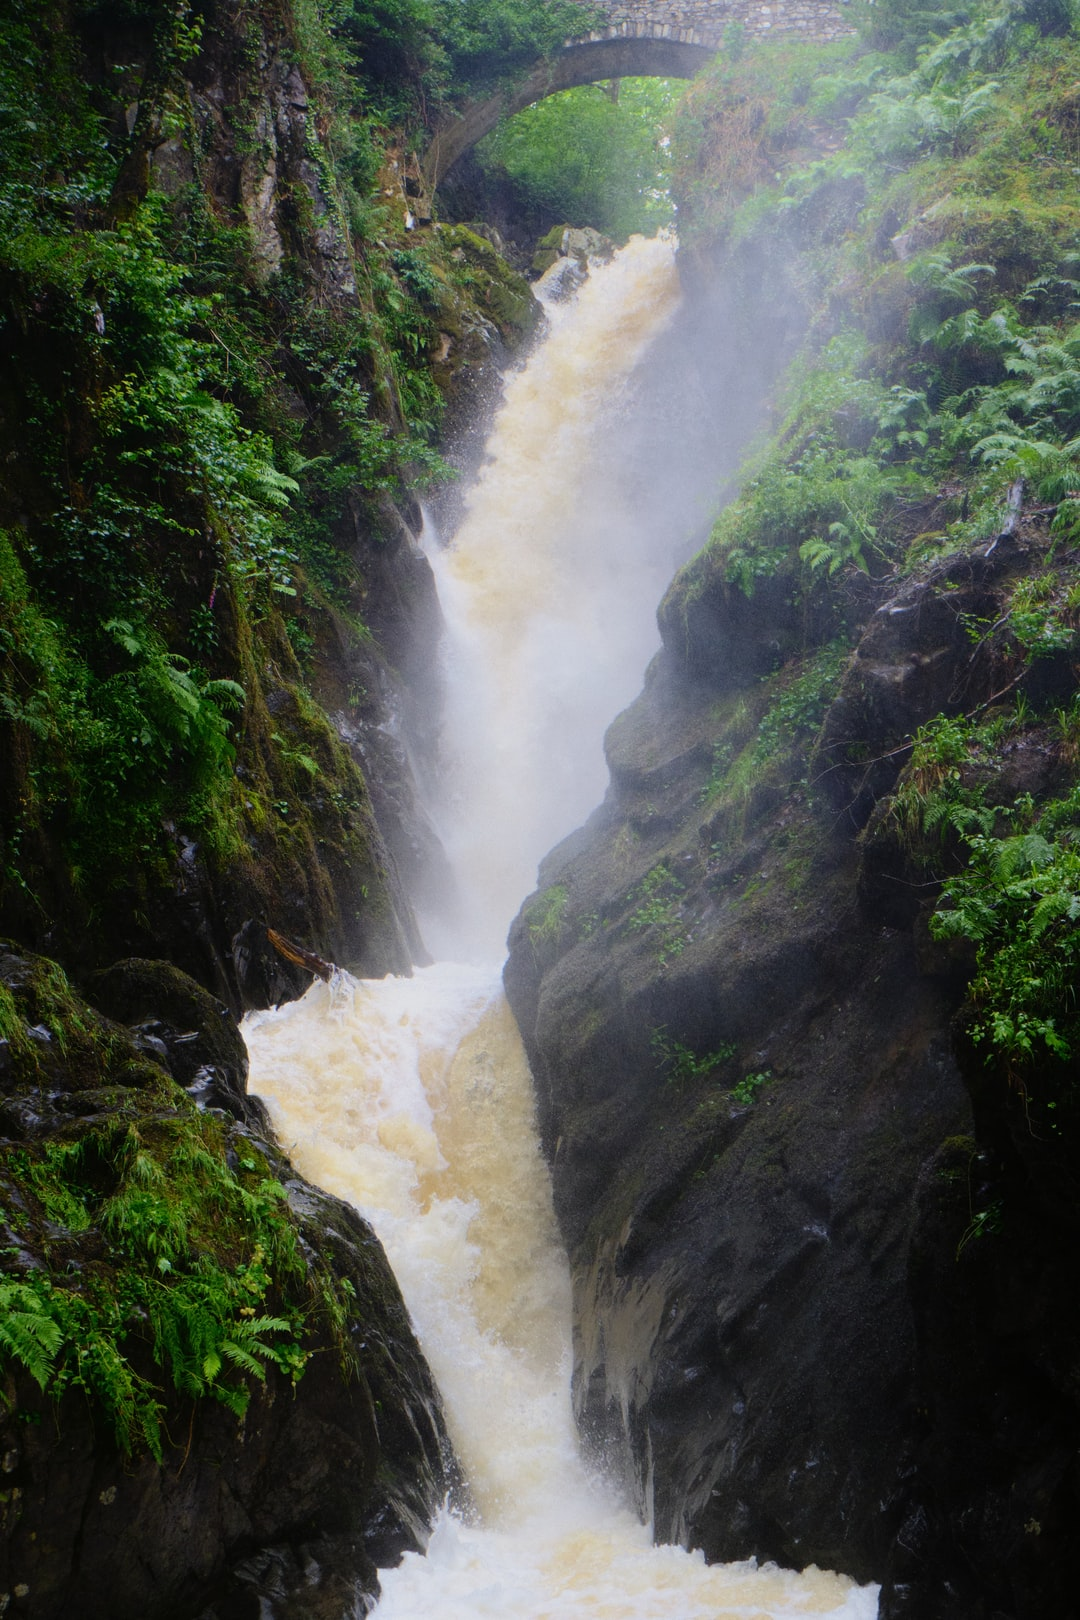 Aira Force, in full spate after a weekend of heavy rain. The waterfall is probably one of the Lake District's most famous, dropping 70ft in two parts with a picturesque packhorse bridge arching above it.